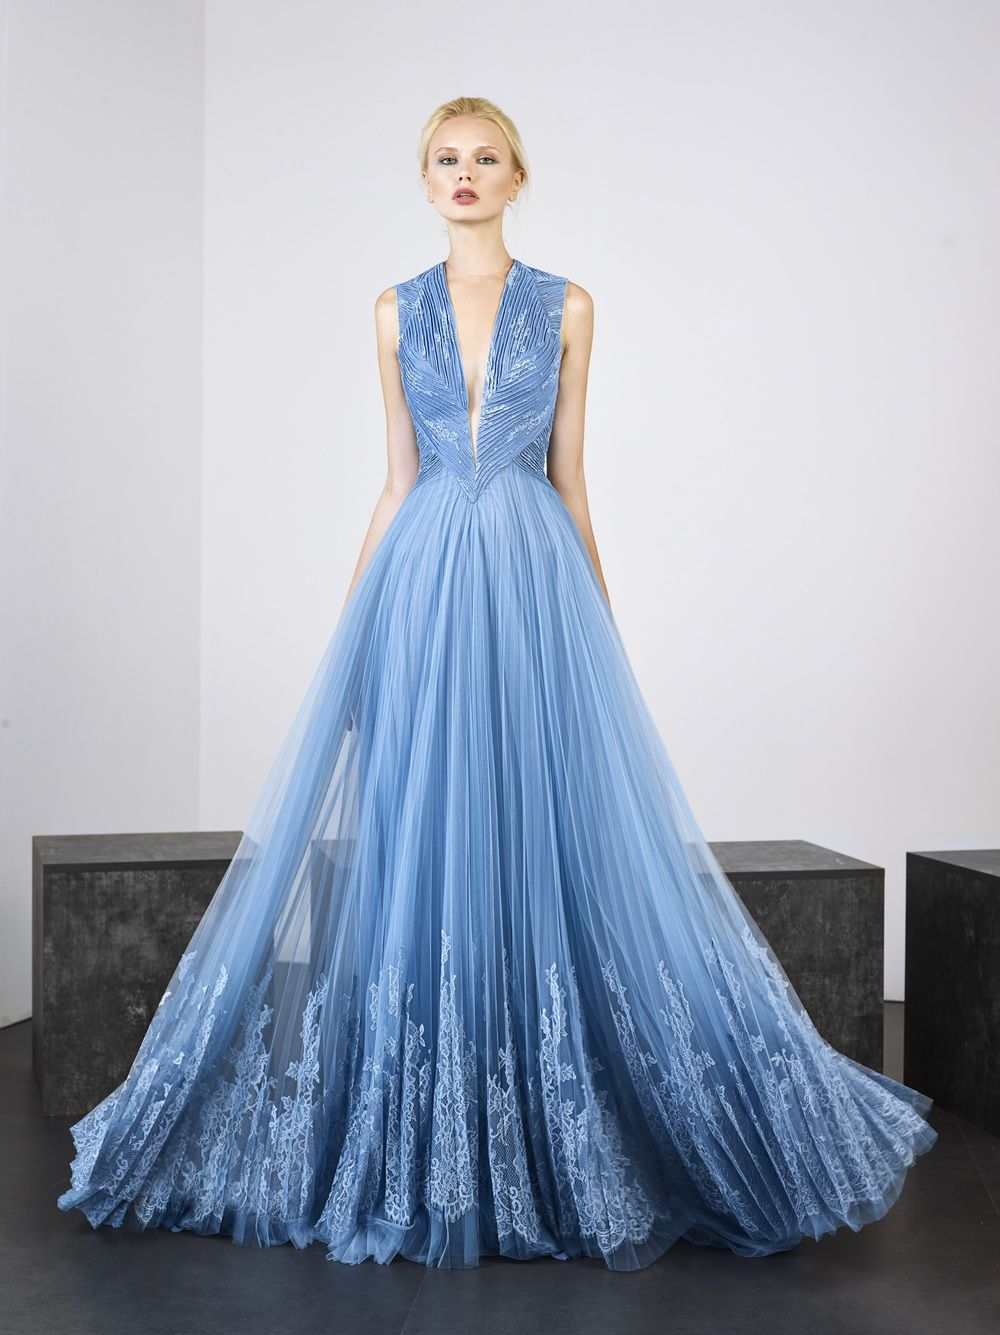 628e1eff13c8 Tony Ward S S 2019  Gorgeous blue gown with silk embroidery!